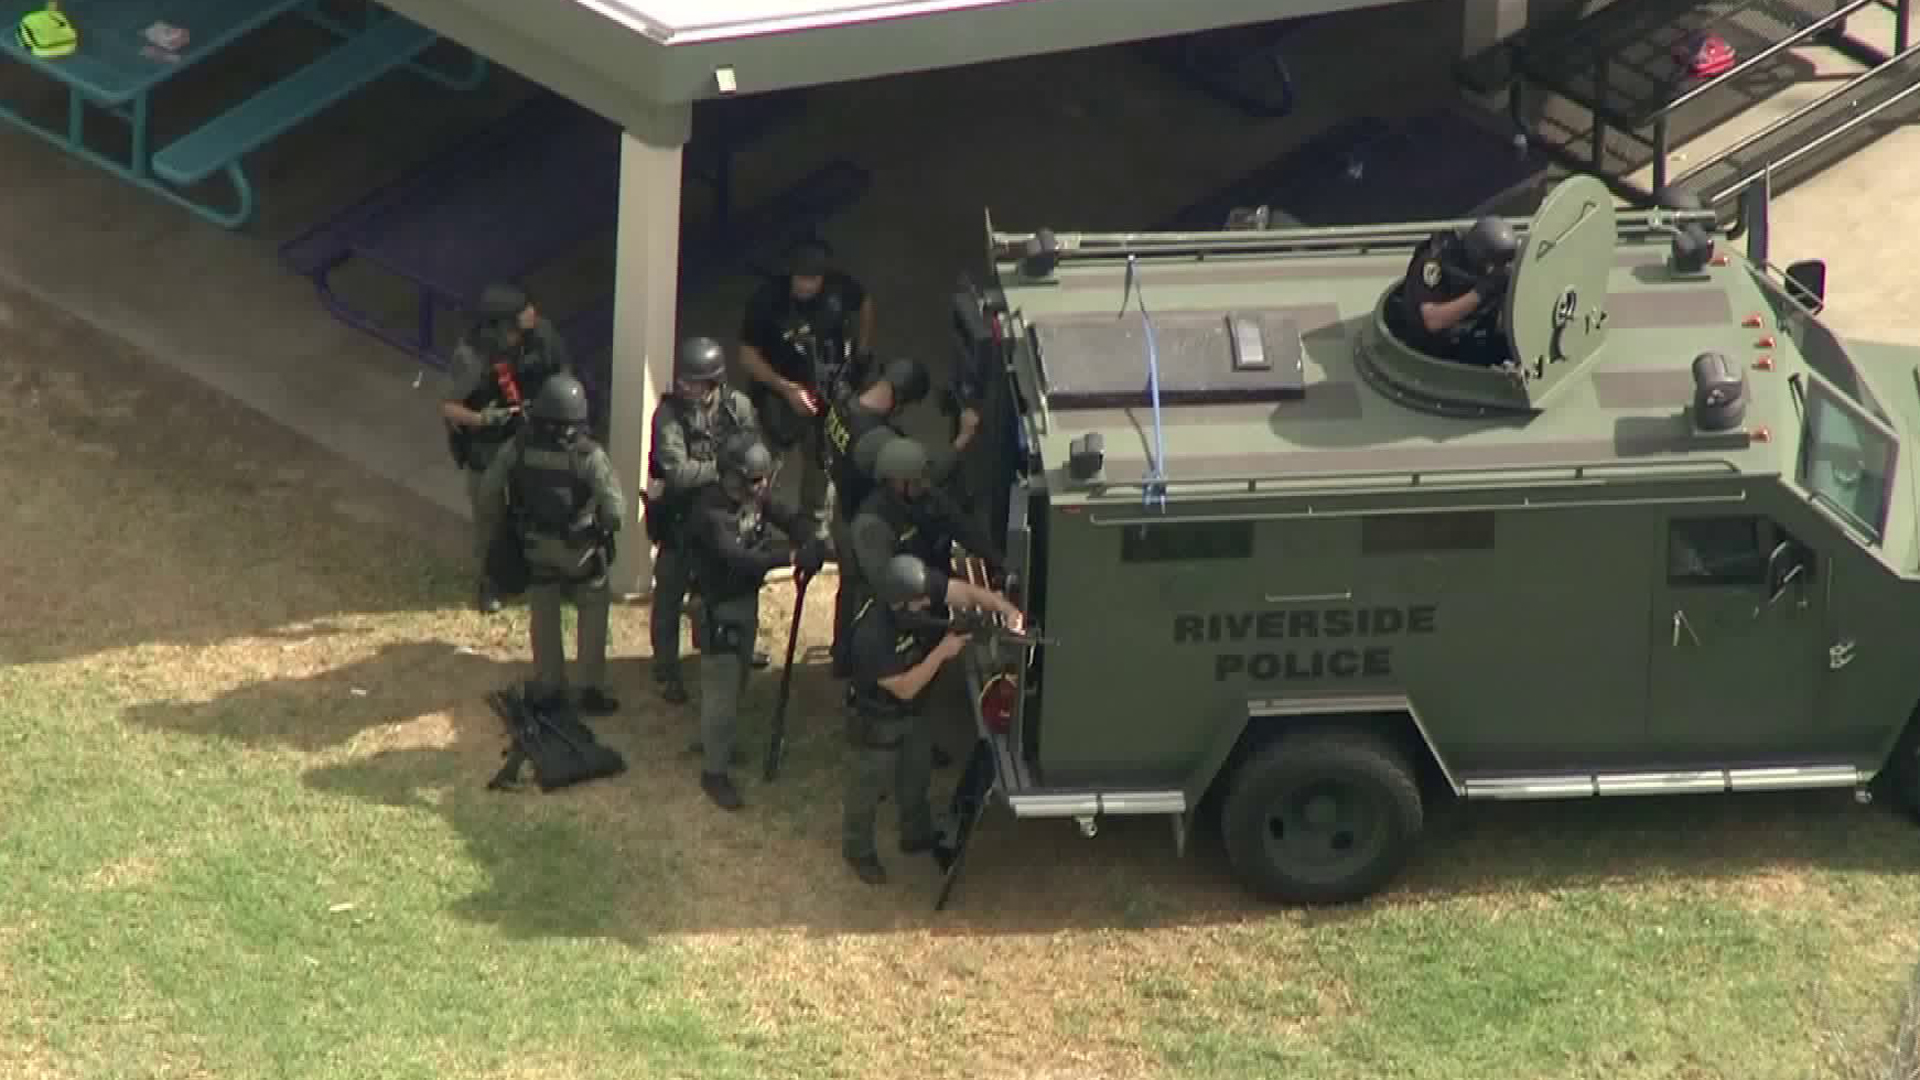 Riverside police respond to an elementary school standoff Oct. 31, 2017. (Credit: KTLA)